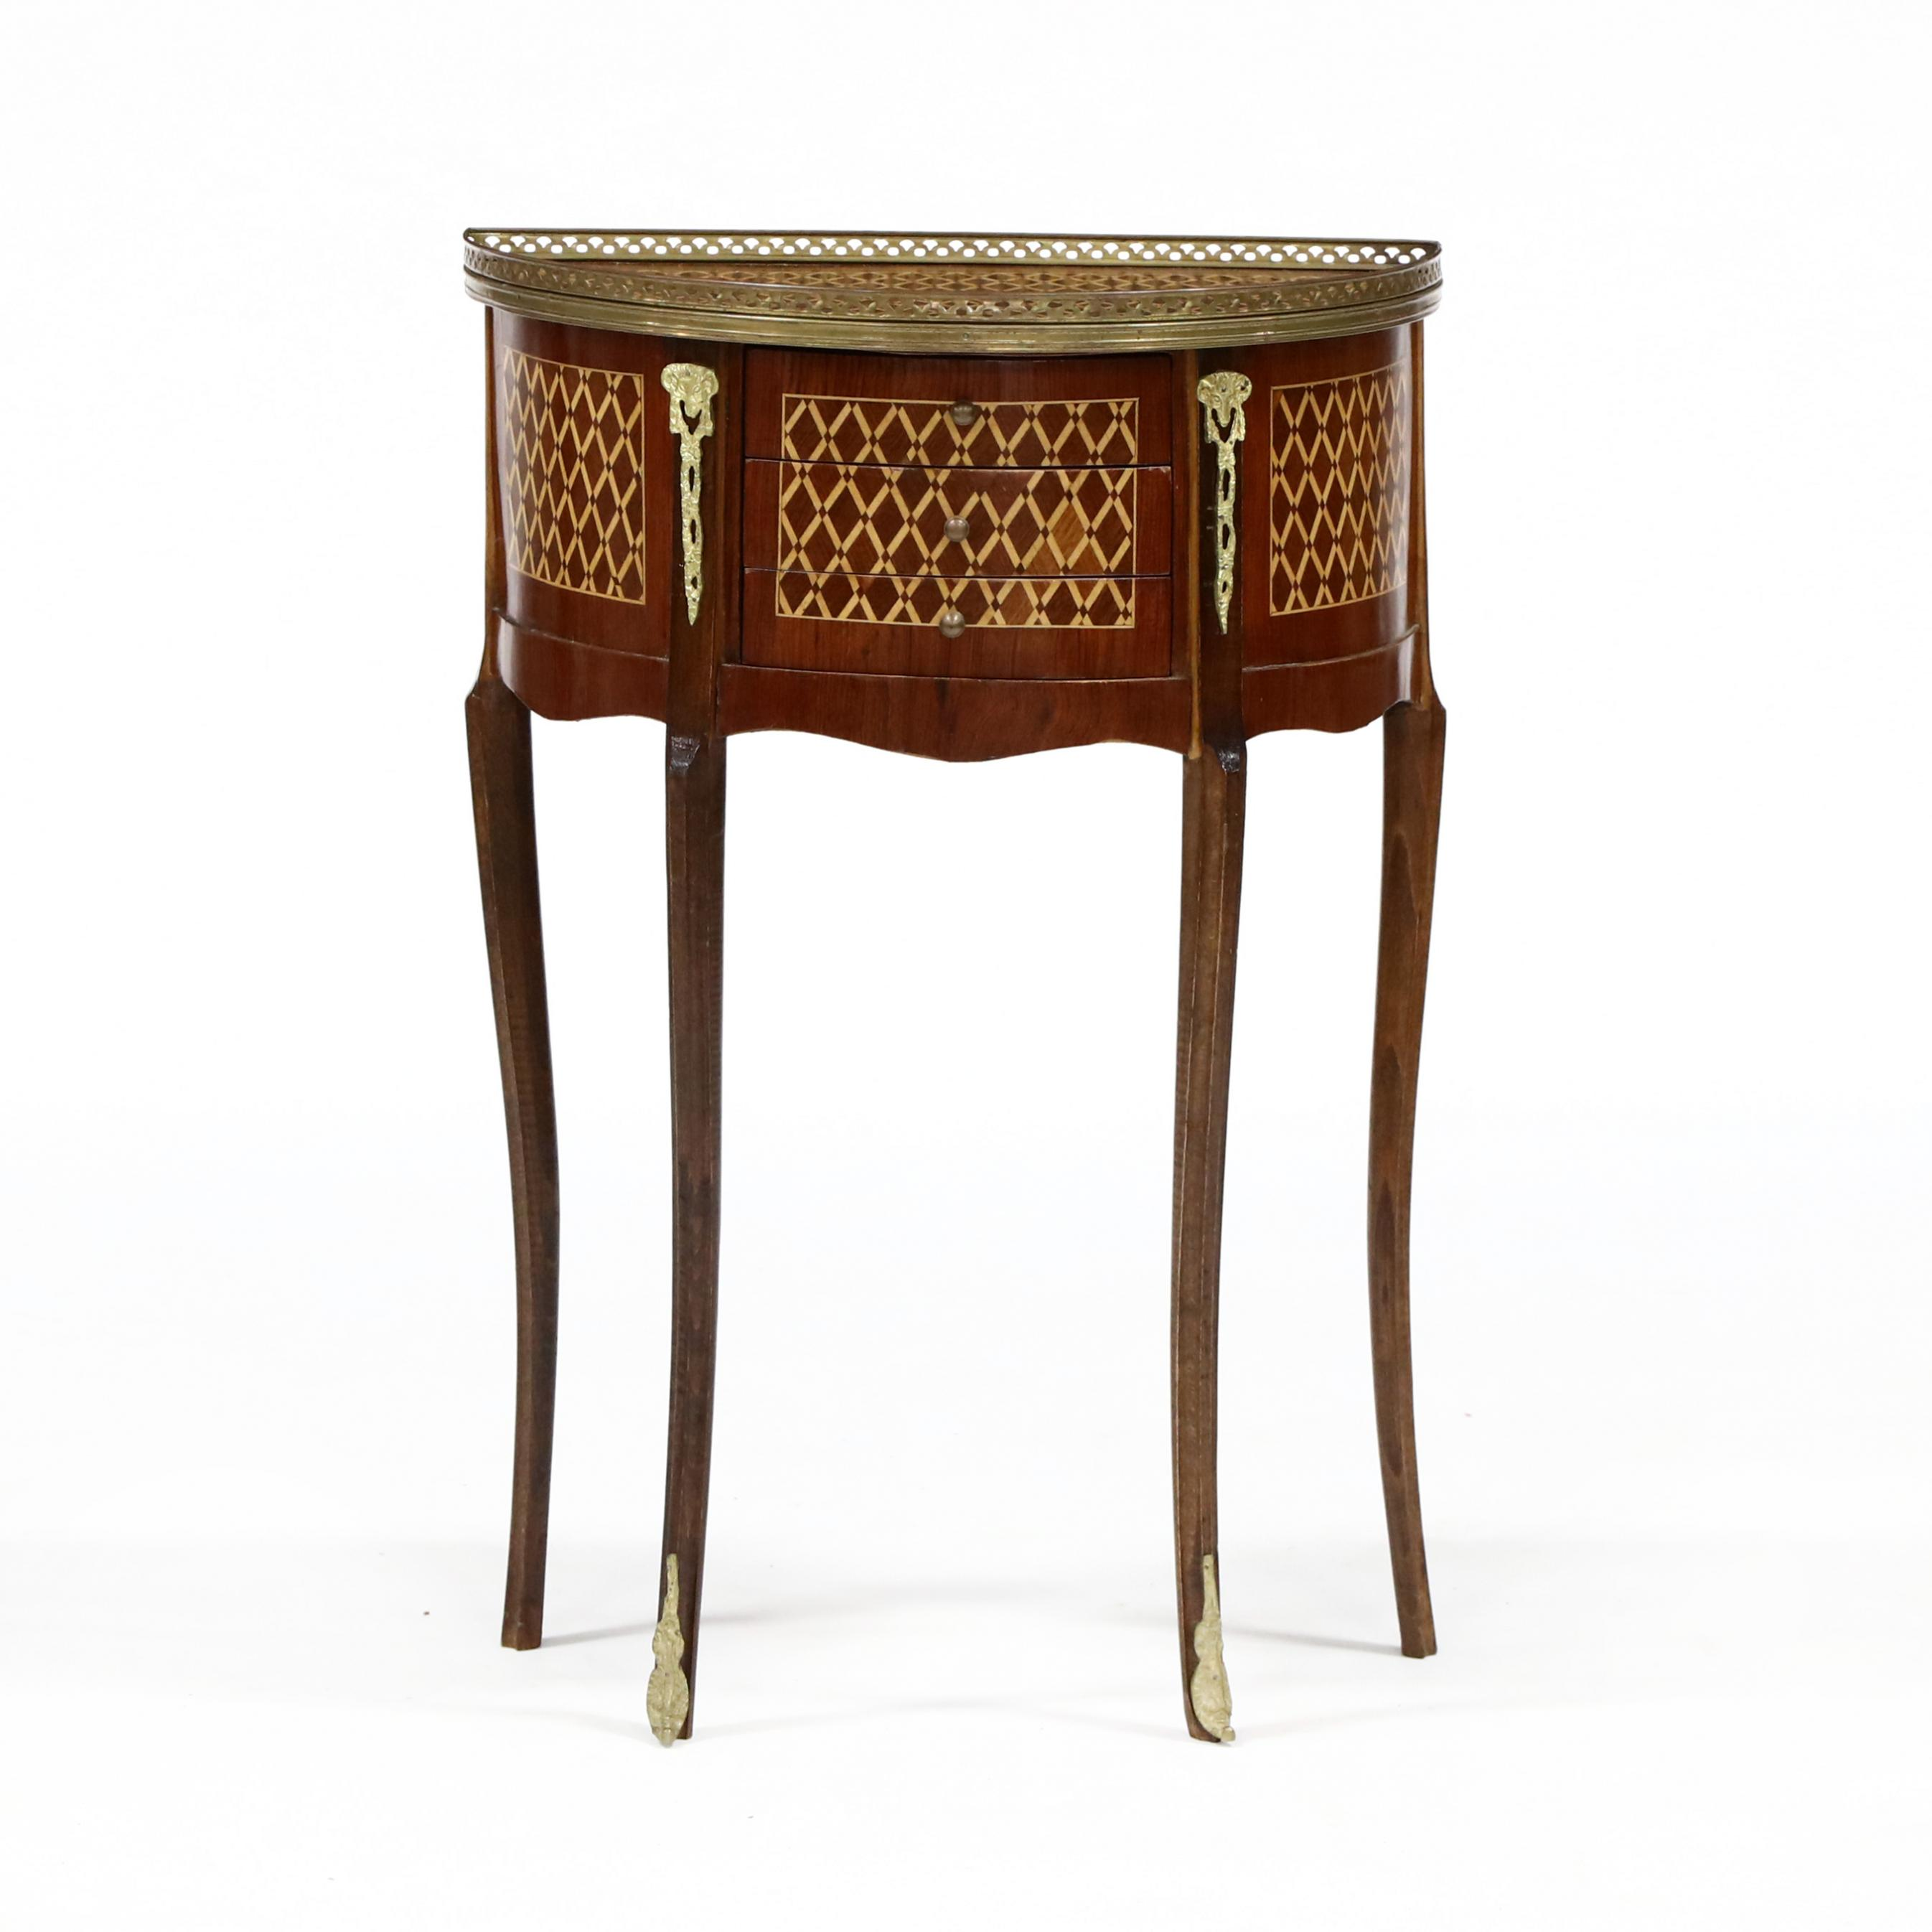 french-parquetry-inlaid-demilune-stand